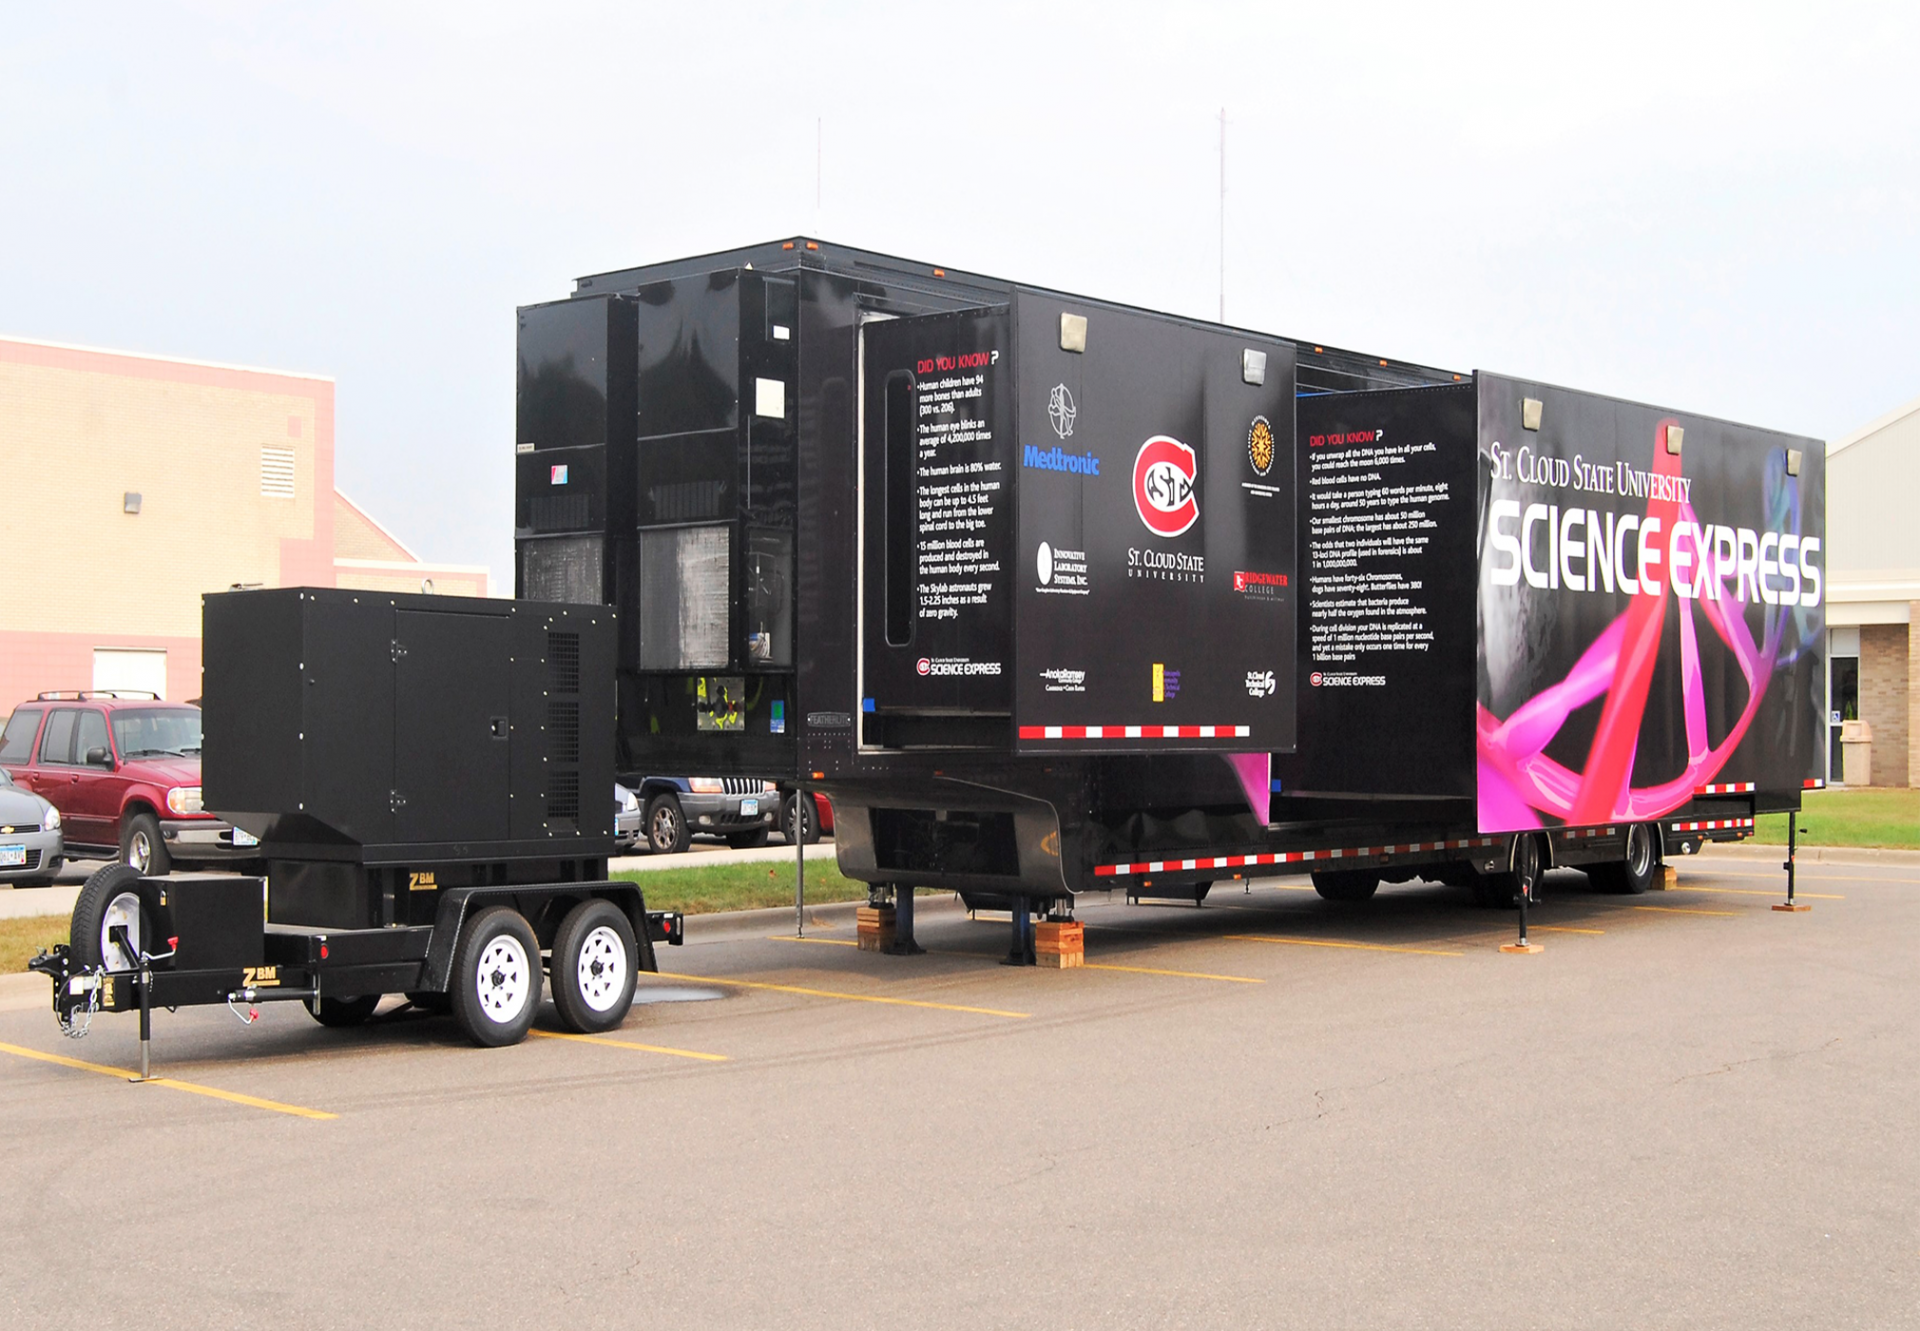 Mobile Diesel Generator_St. Cloud University Project_ZBM